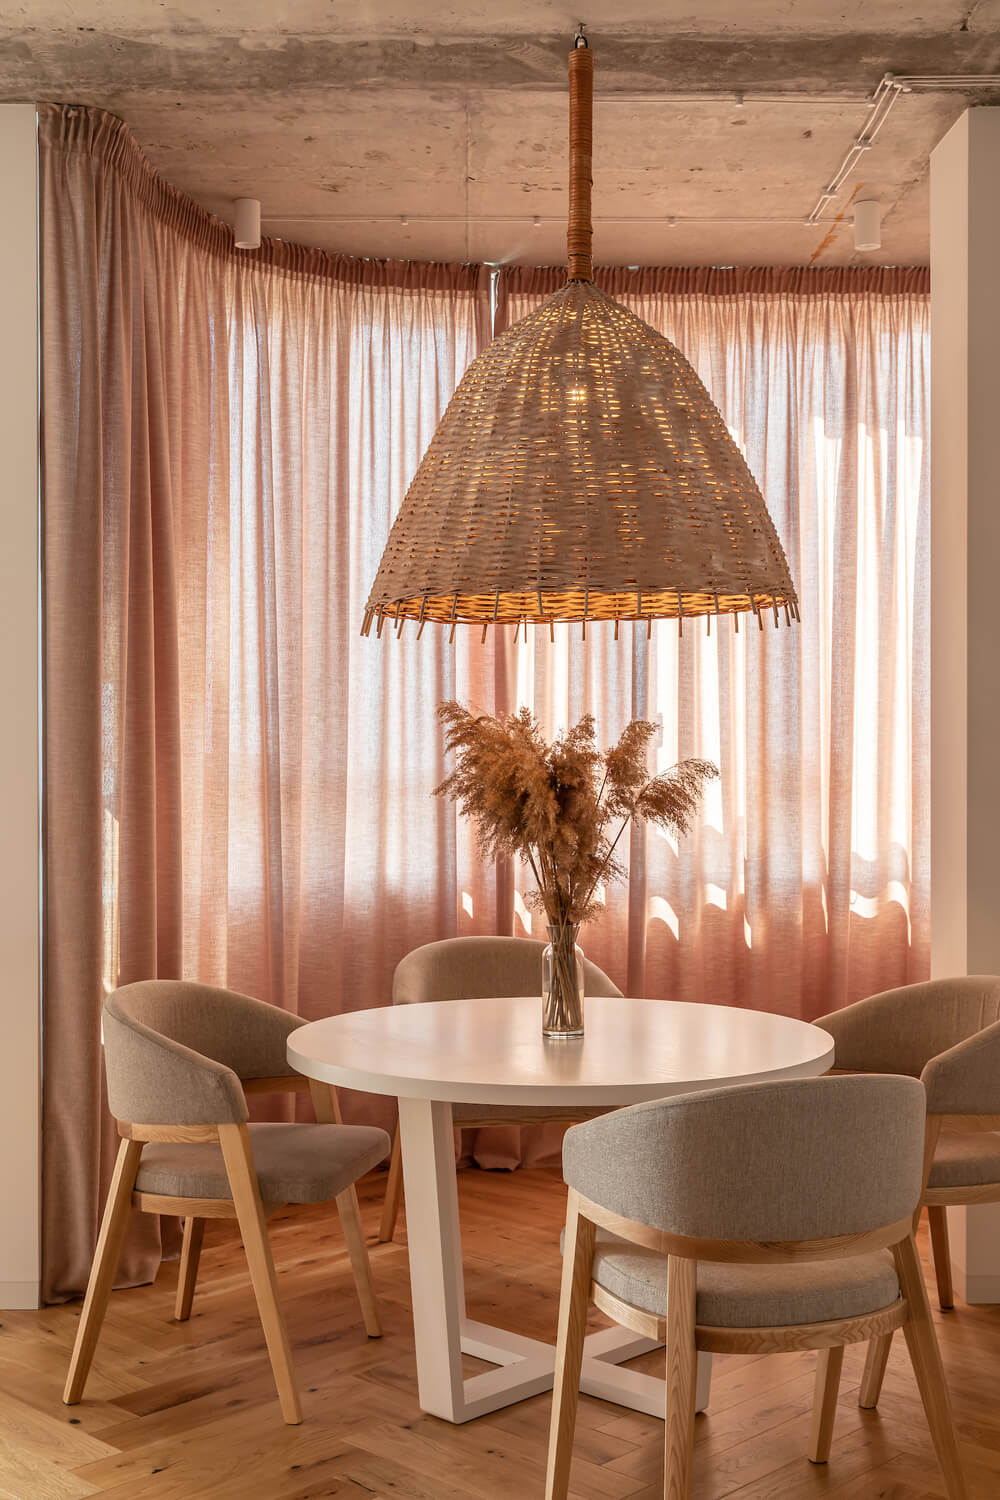 The dining area's round white table is surrounded by gray cushioned chairs and complemented by the pink curtains.